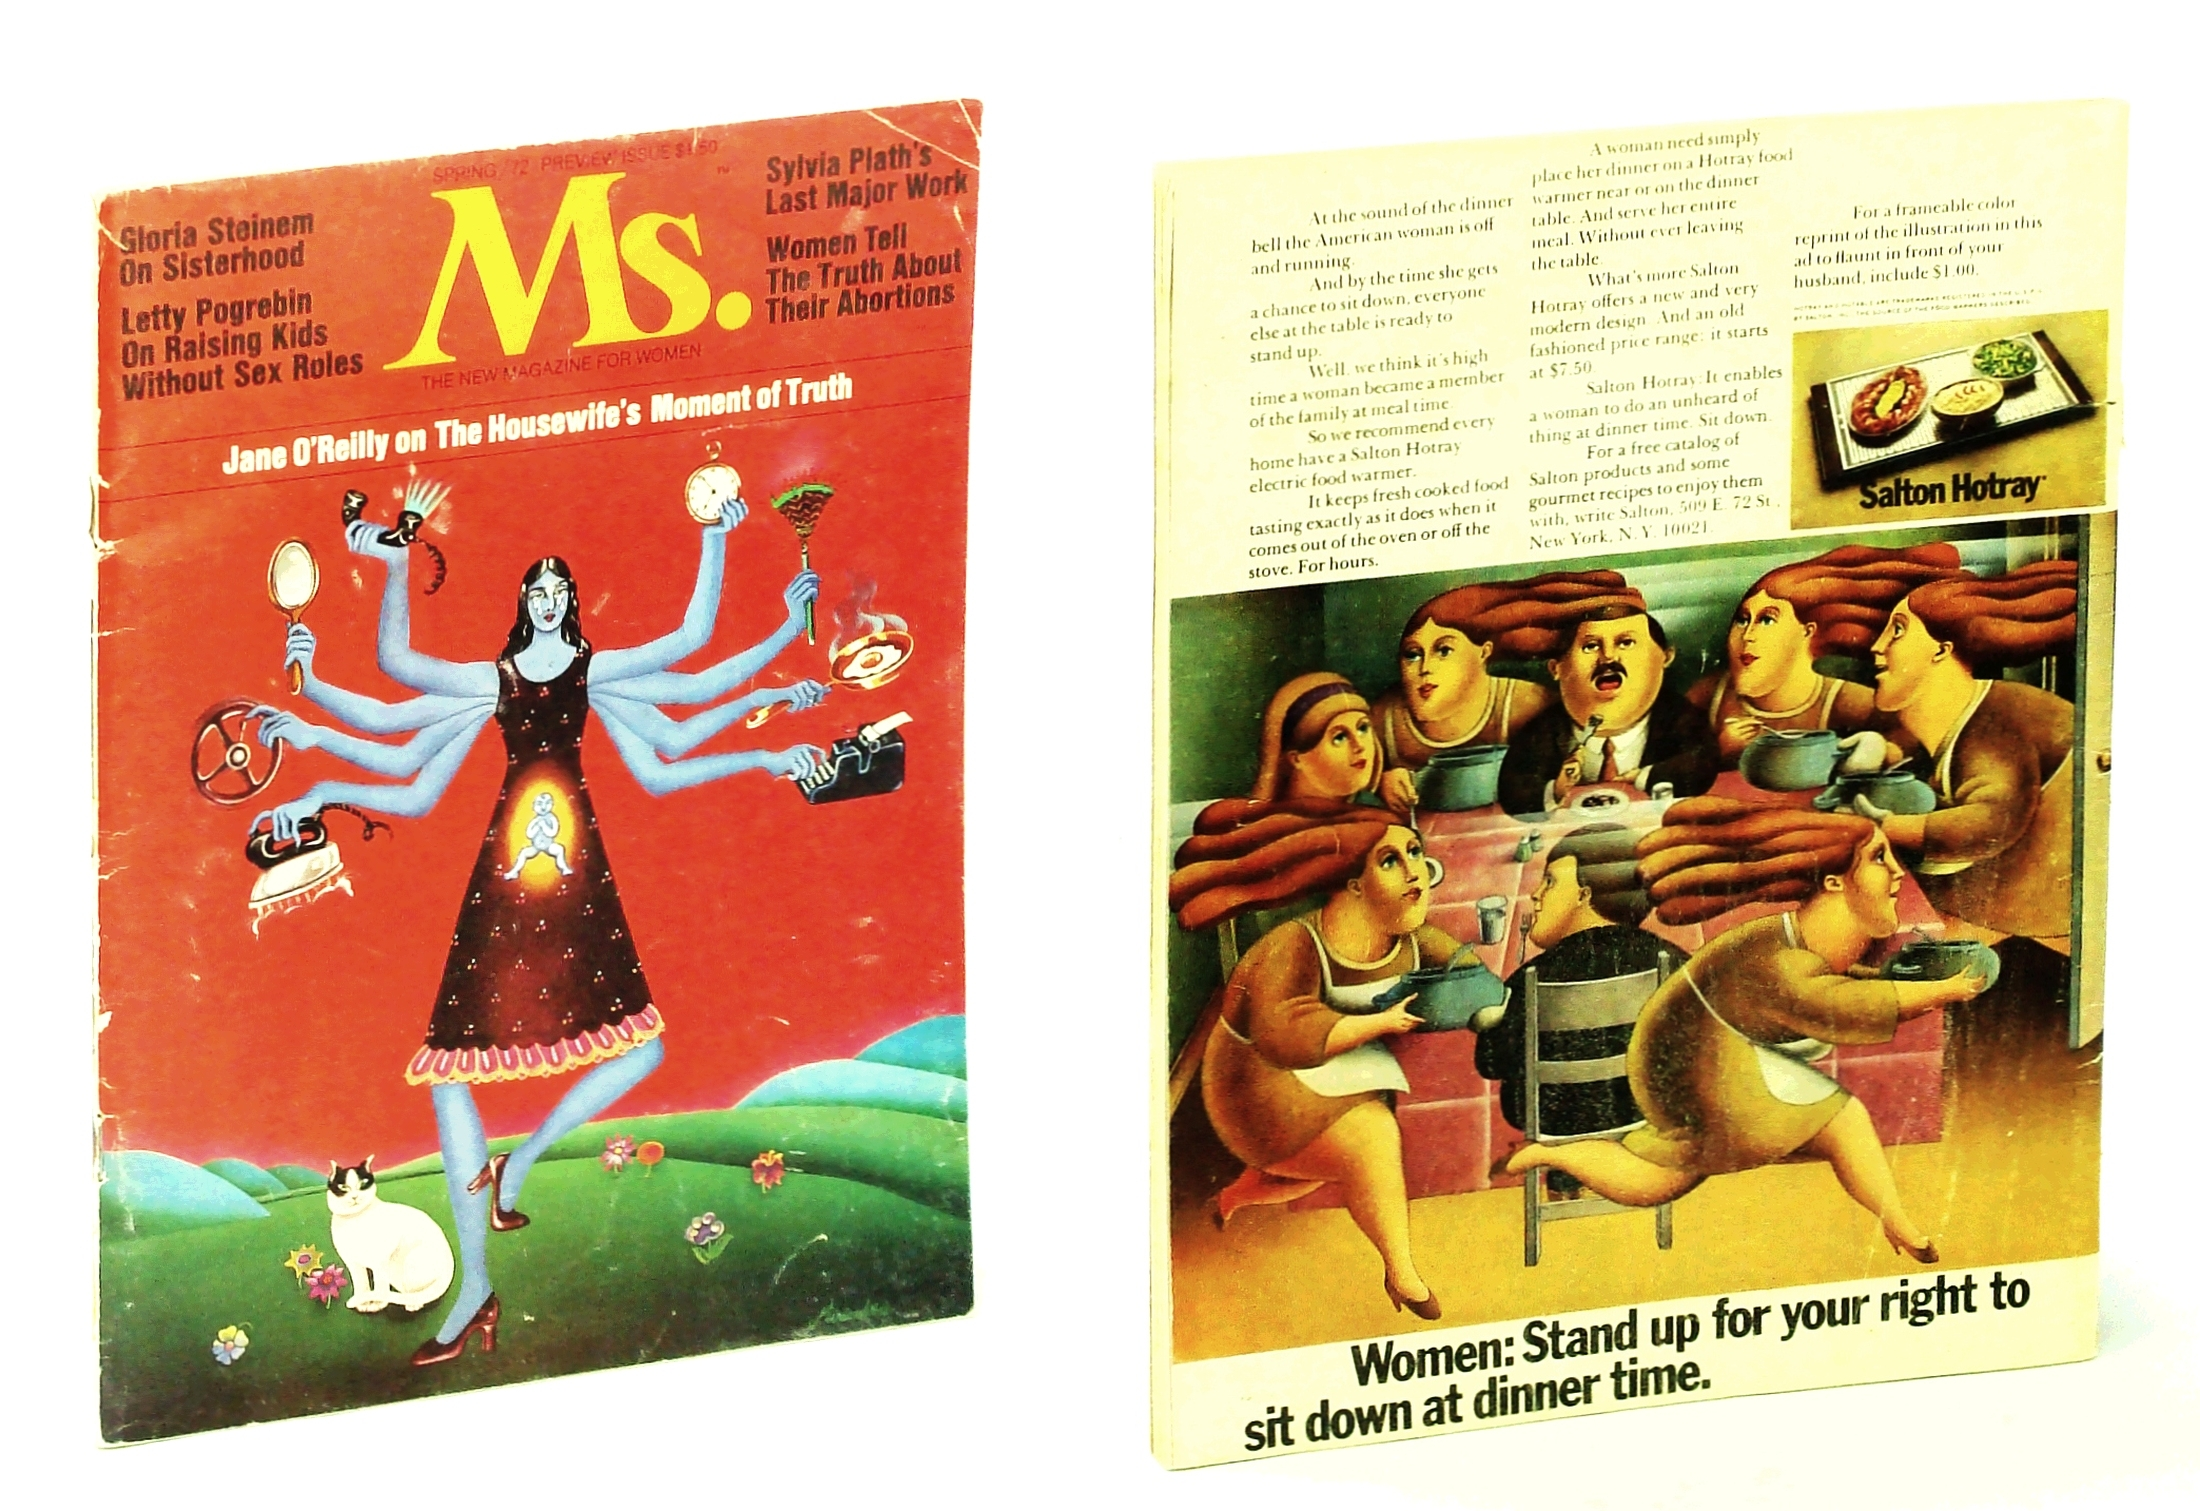 Image for Ms. The New Magazine for Women (Spring 1972 Preview Issue)